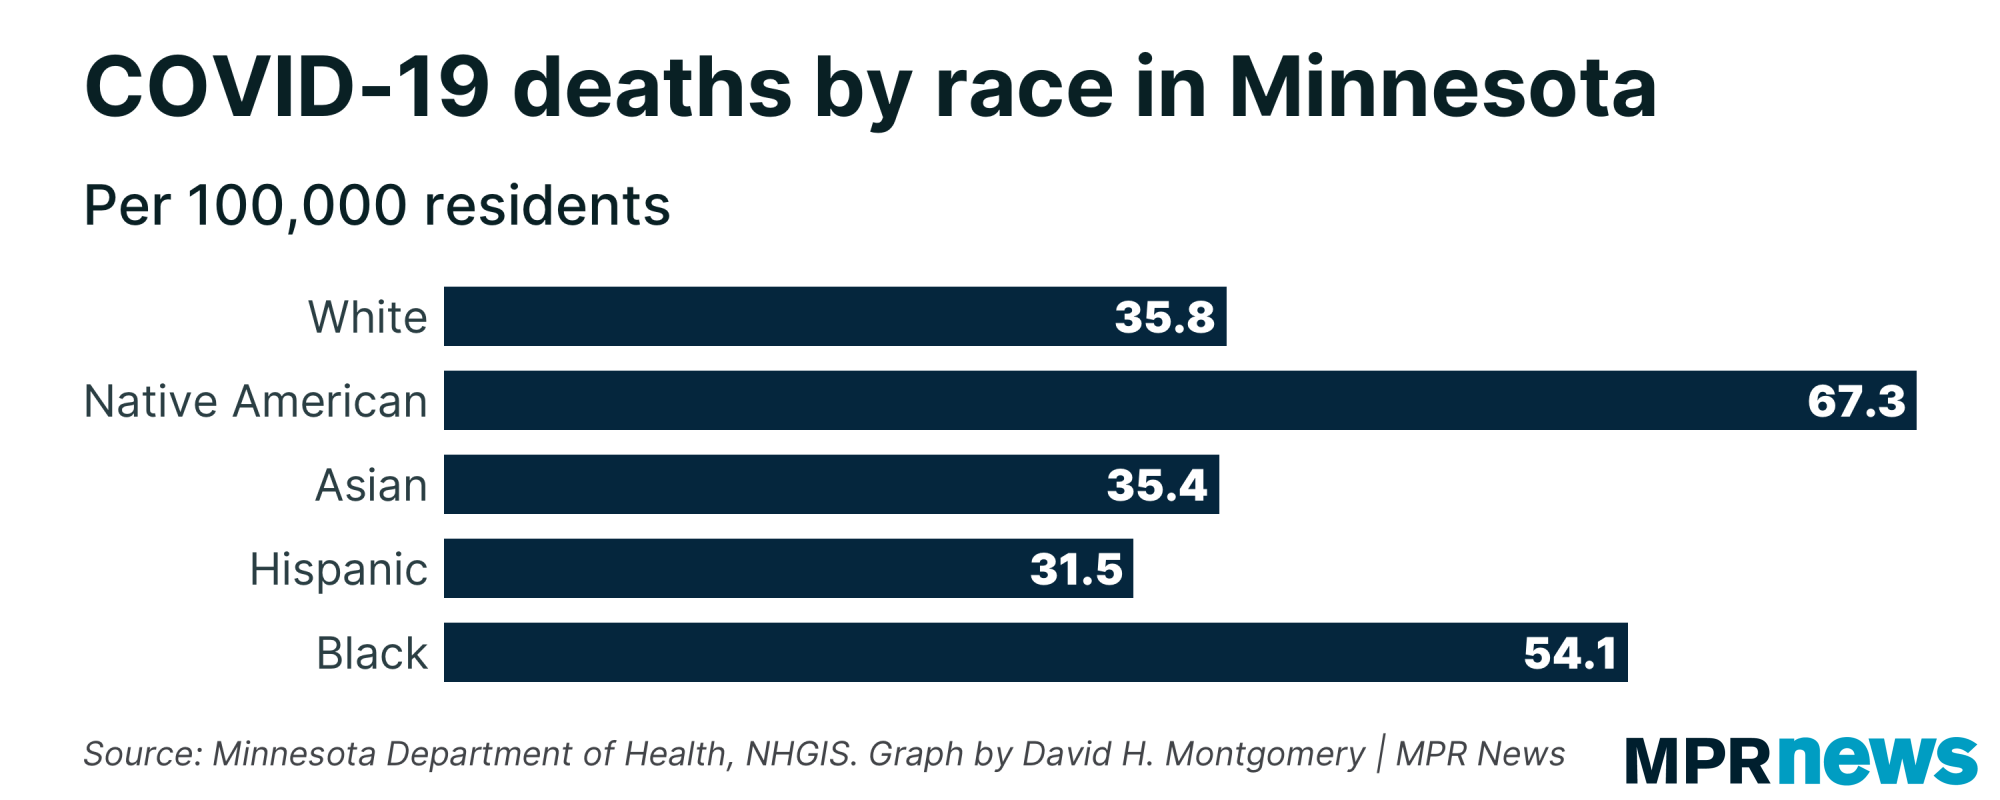 COVID-19 deaths per capita among Minnesota residents by race